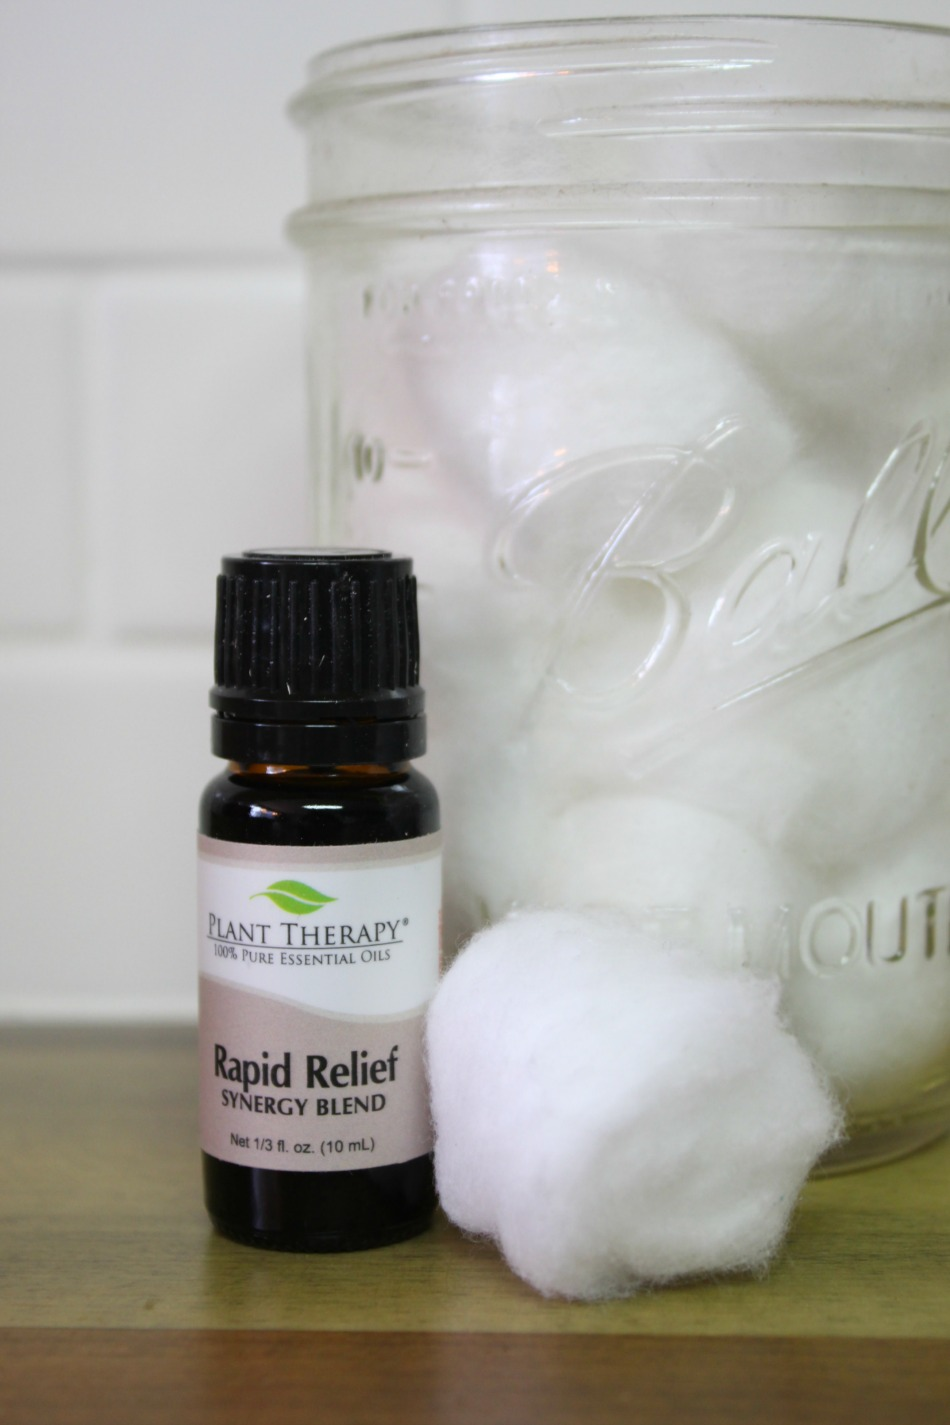 Are You Diffusing Essential Oils Safely?   Growing Up Herbal   Diffusing essential oils is one of the most effective ways to use essential oils, but are you doing it safely? Learn more in this post!